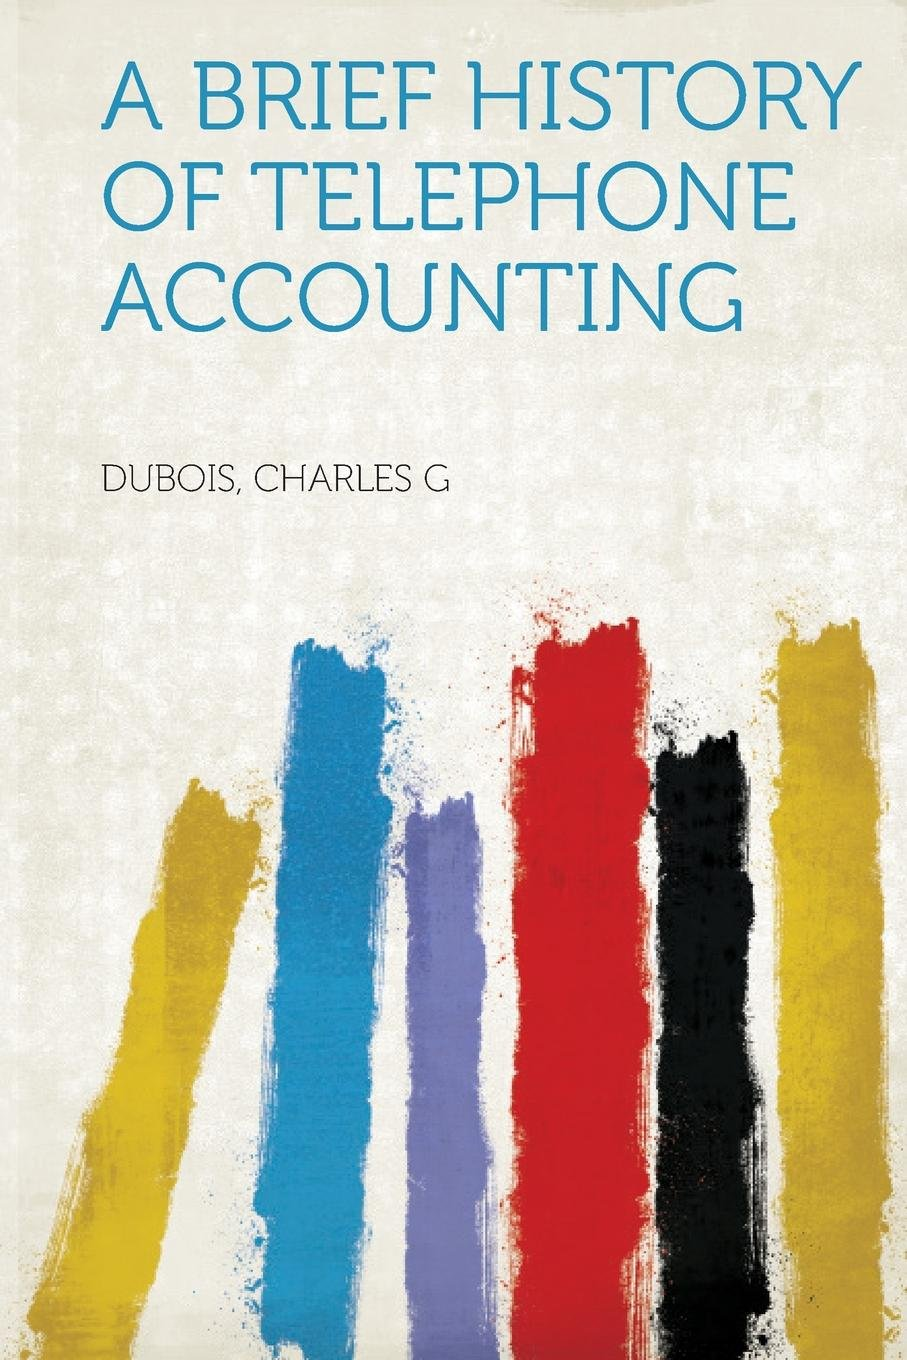 A Brief History of Telephone Accounting: DuBois Charles G